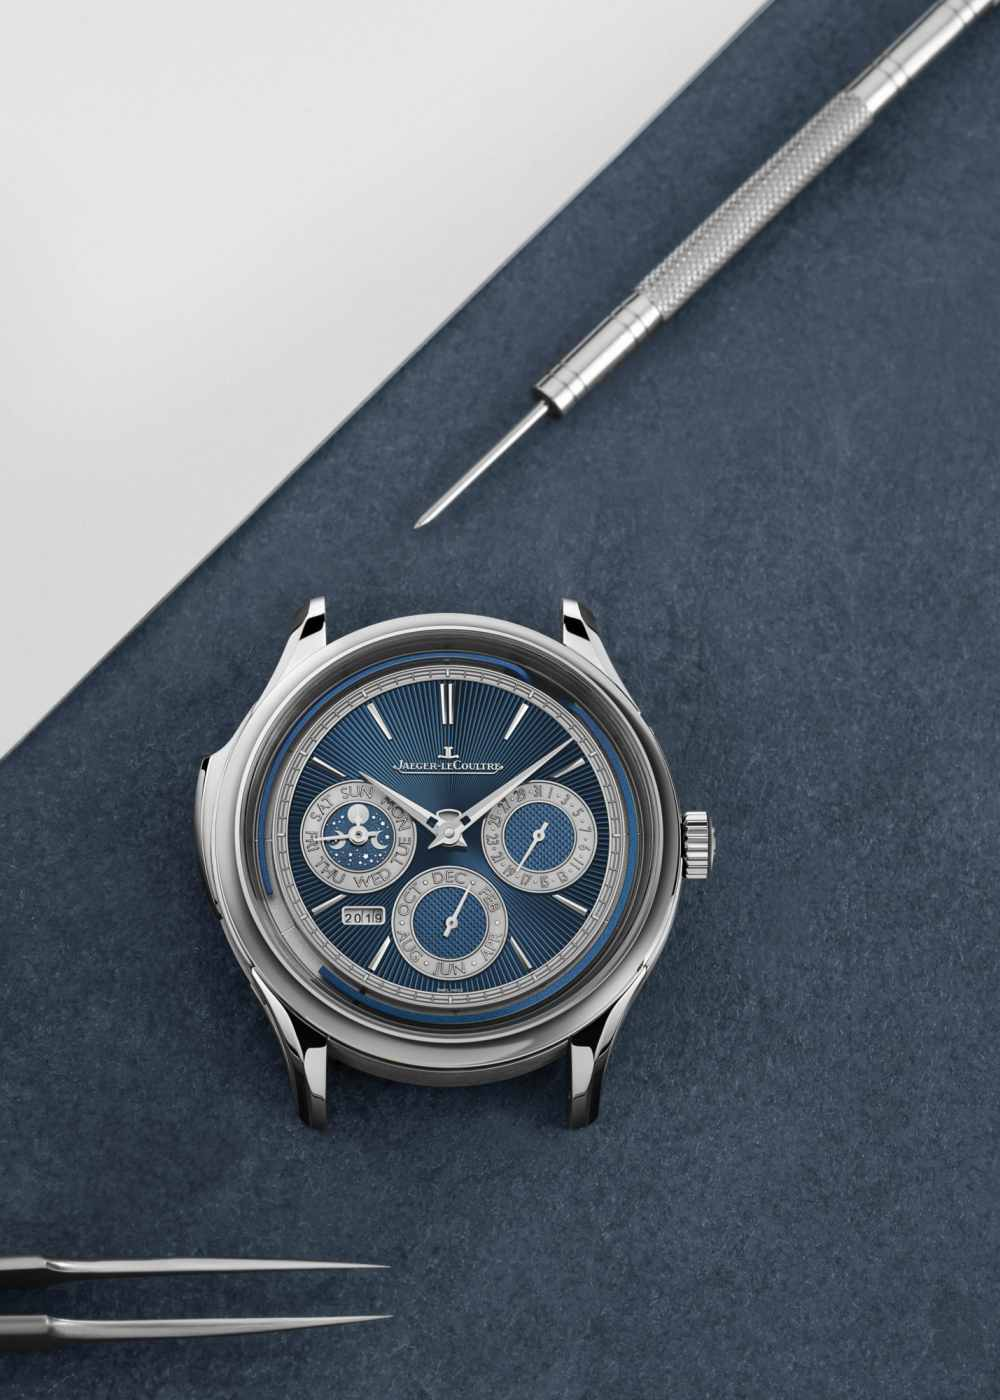 Art of Mechanical Jaeger Lecoultre Master Grande Tradition Répétition Minutes Perpétuelle Maki - 全新音簧 悦耳钟声:JLC 超卓传统大师万年历三问腕表